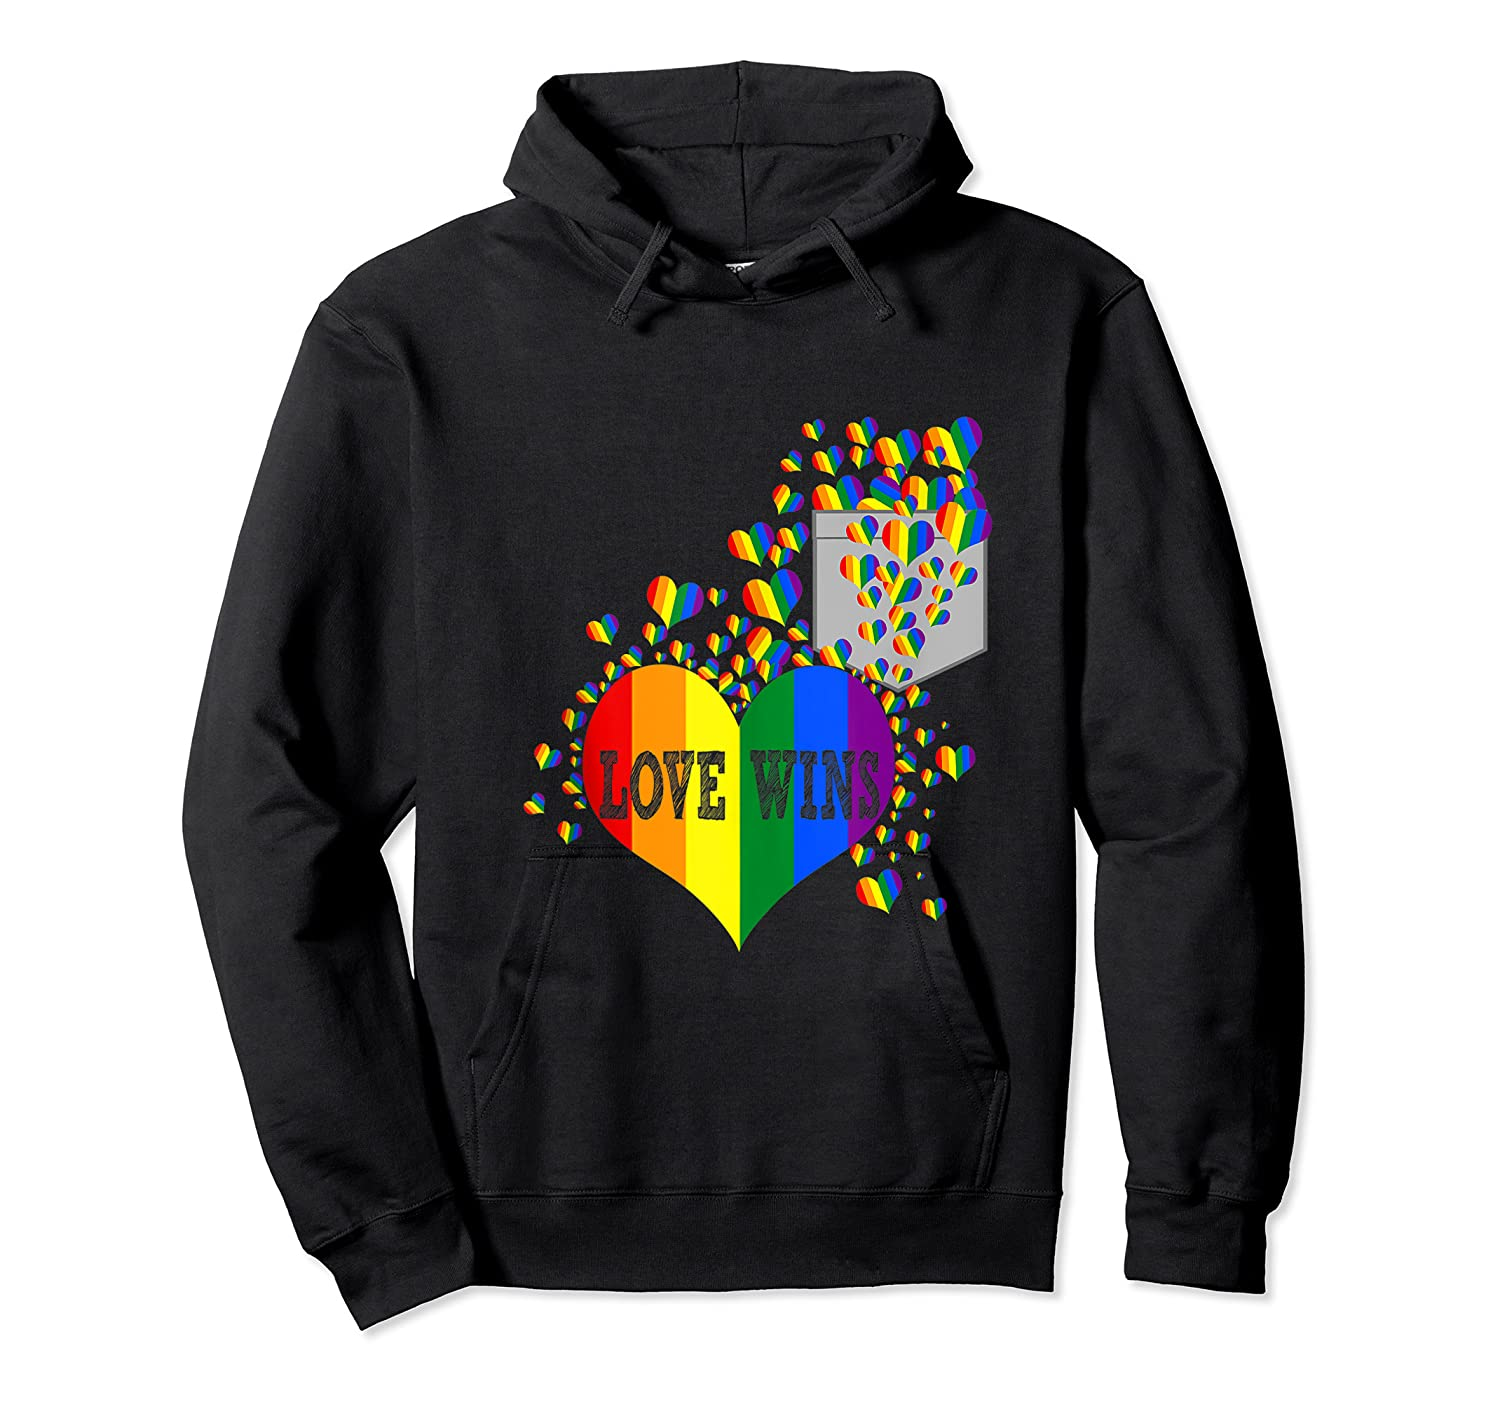 Love Wins Lgbtq Color Heart Pride Month Rally Shirt Tank Top Unisex Pullover Hoodie